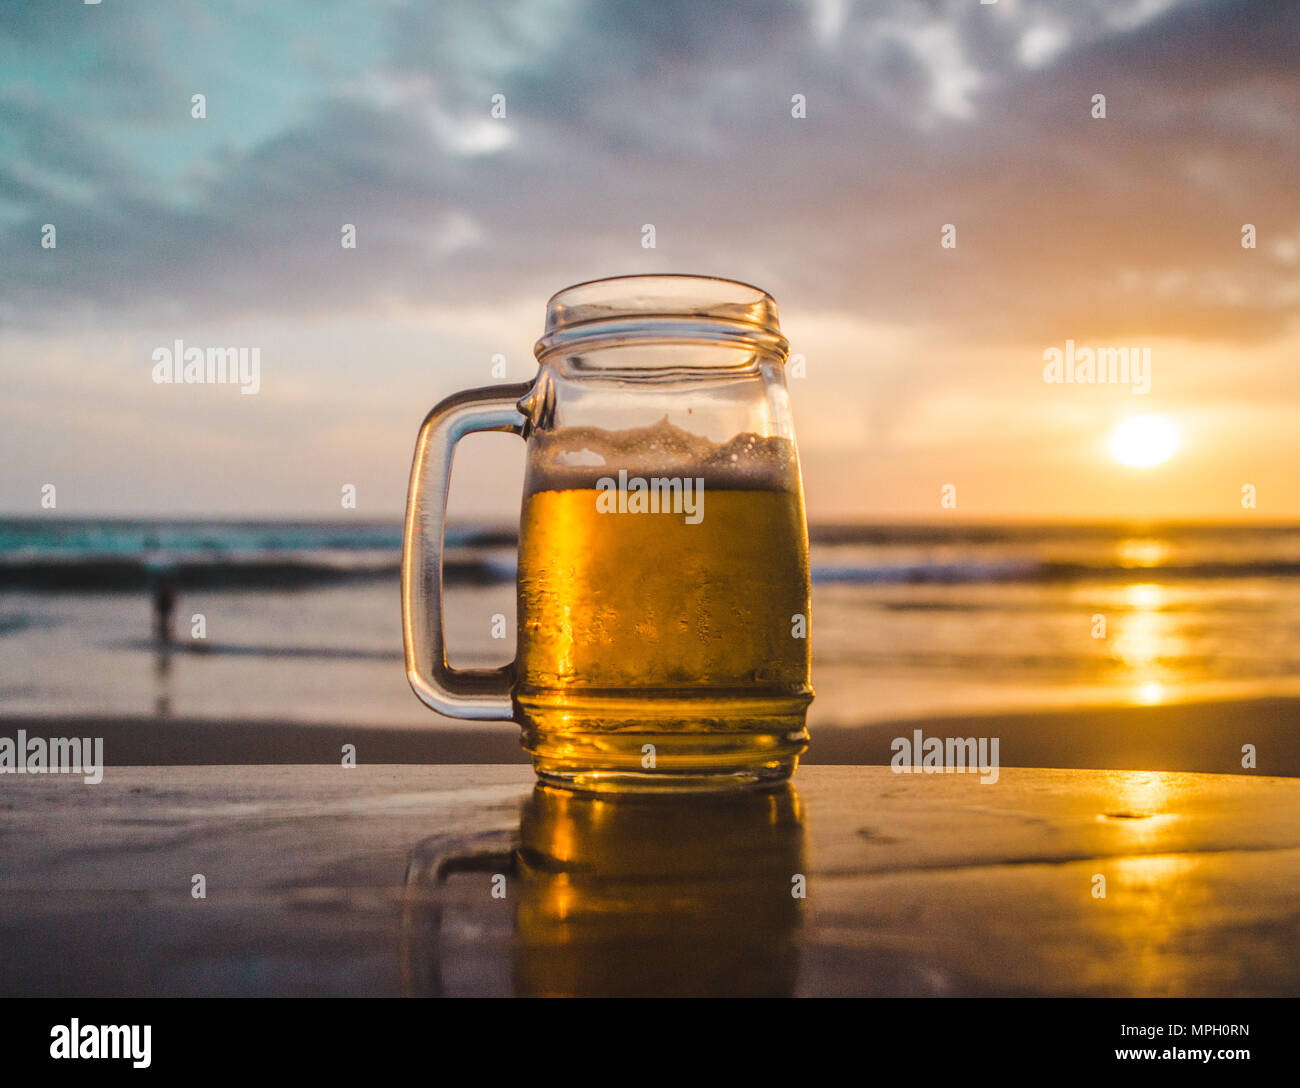 Glass jar of beer on a wooden table looking out at the ocean during sunset - Stock Image